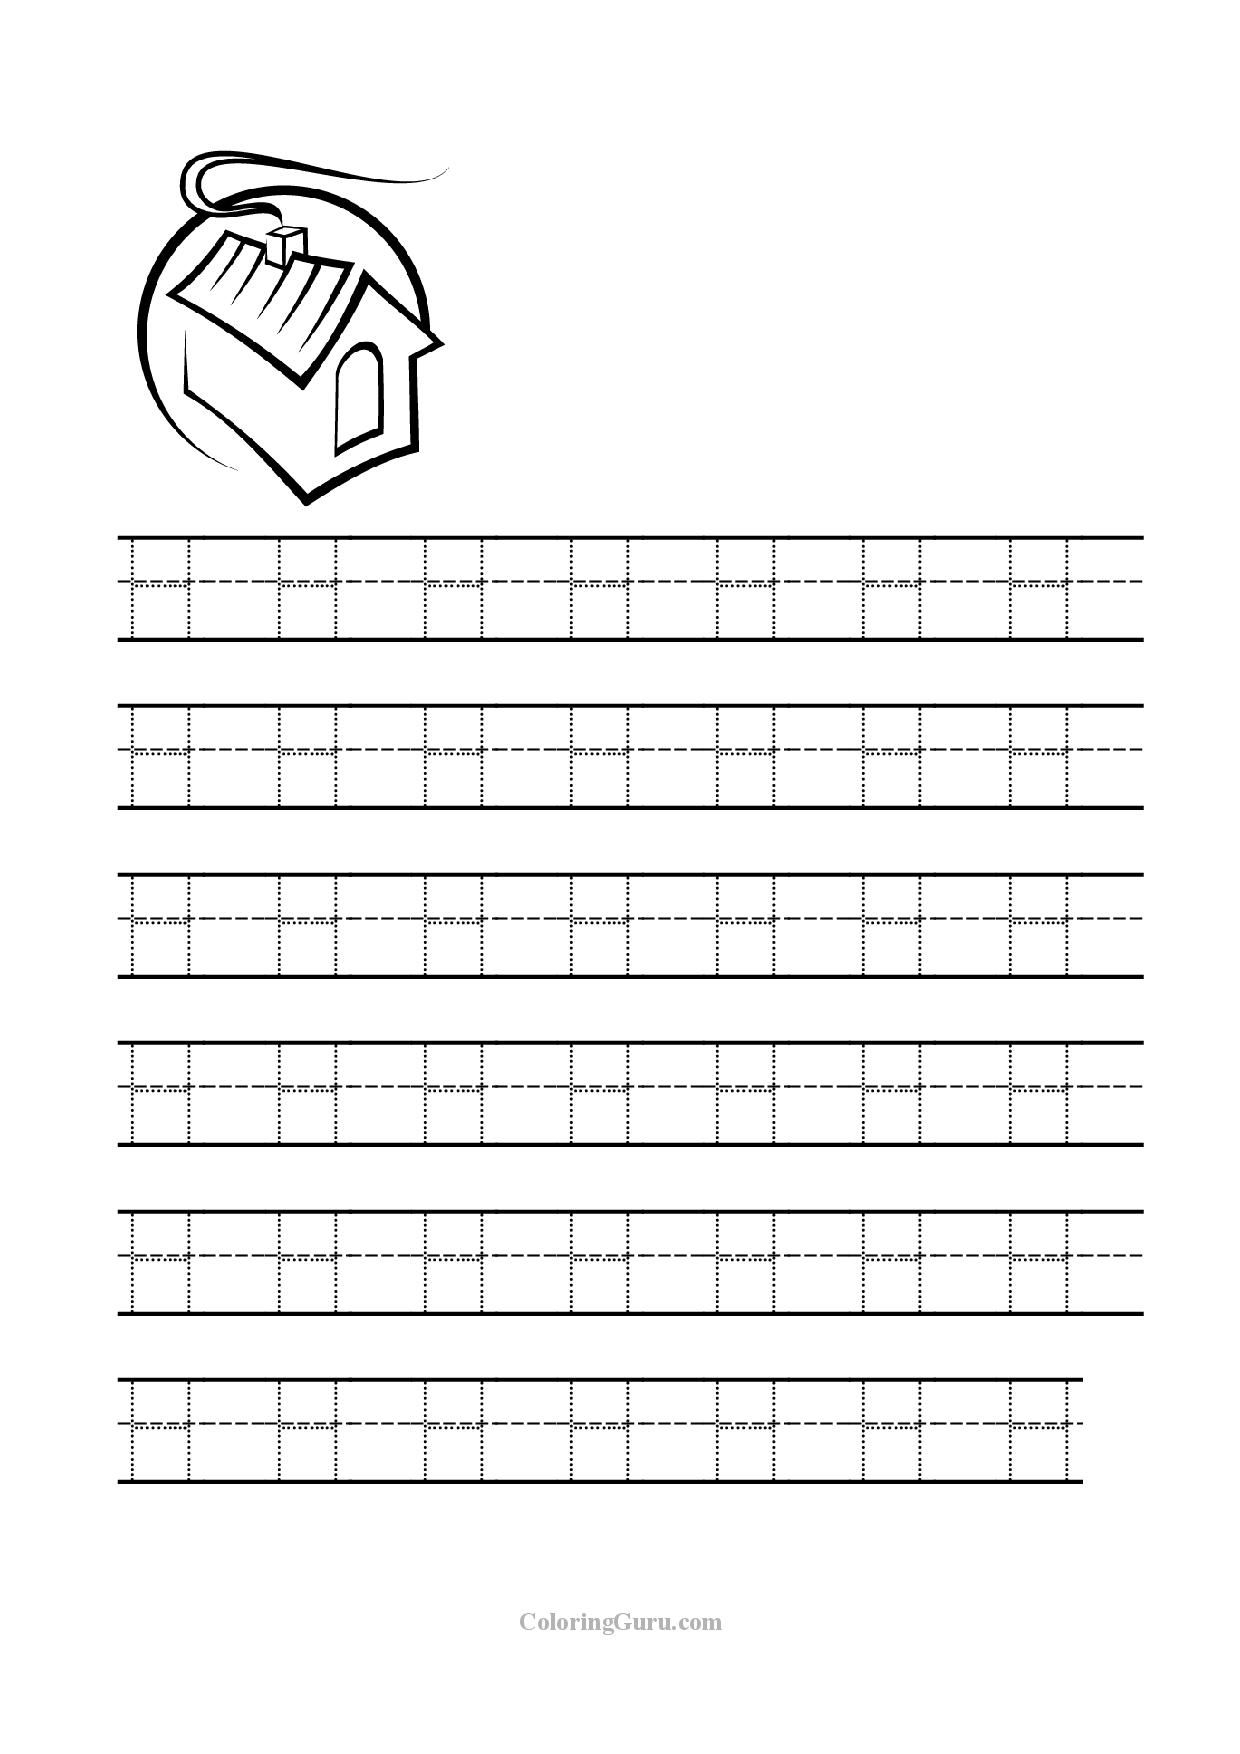 Free Printable Tracing Letter H Worksheets For Preschool intended for Alphabet Tracing Letter H